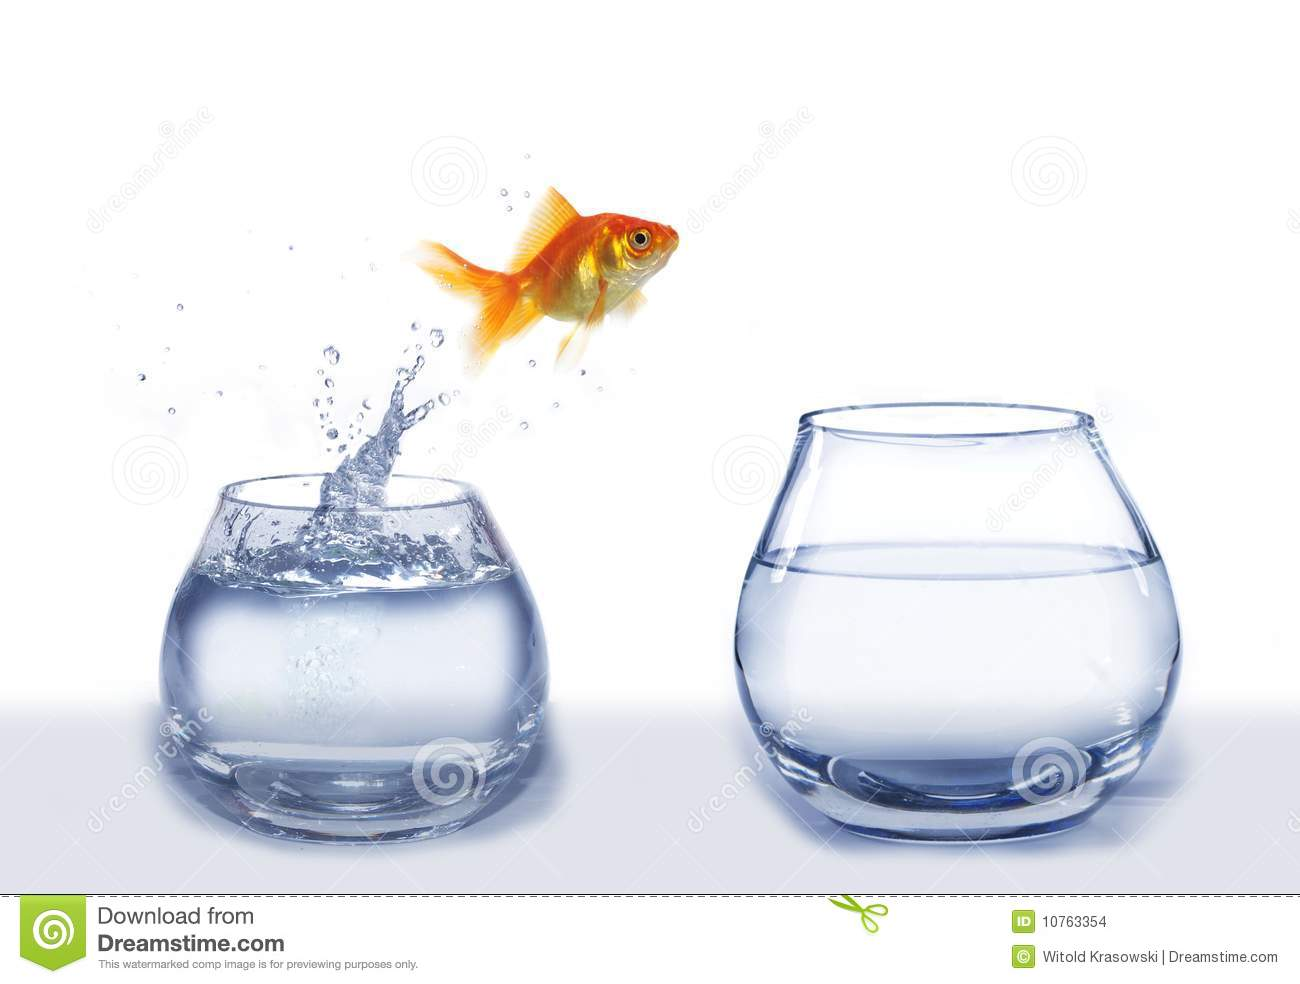 Download 3d Moving Wallpapers For Windows 7 Gold Jumping Out From Aquarium Fish Stock Photo Image Of